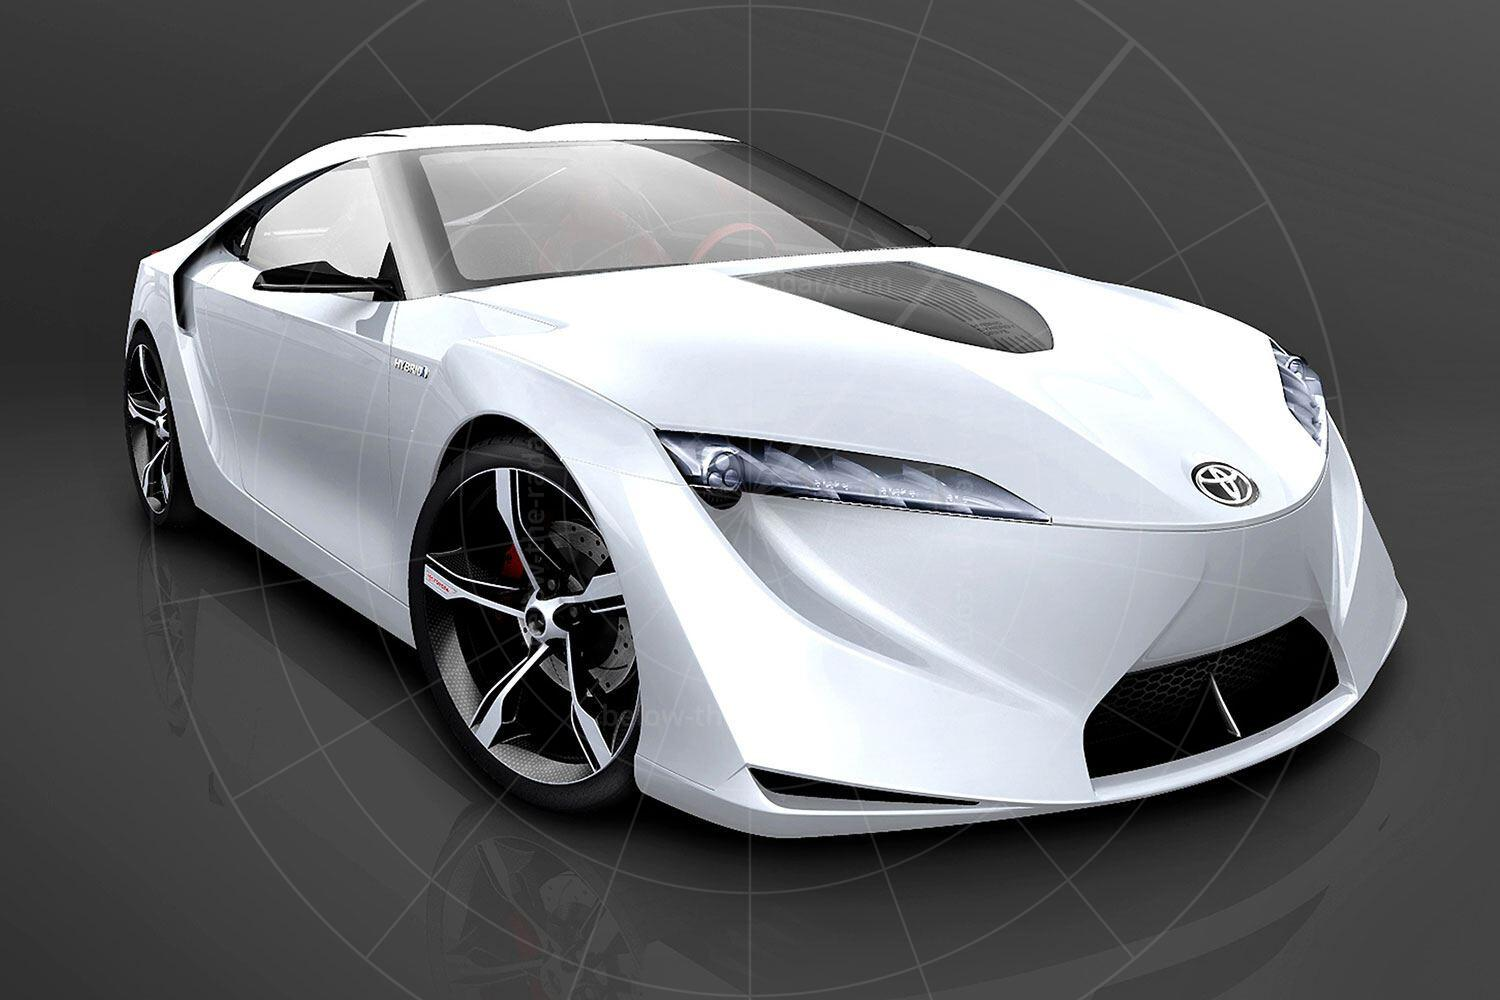 Toyota FT-HS concept Pic: Toyota | Toyota FT-HS concept